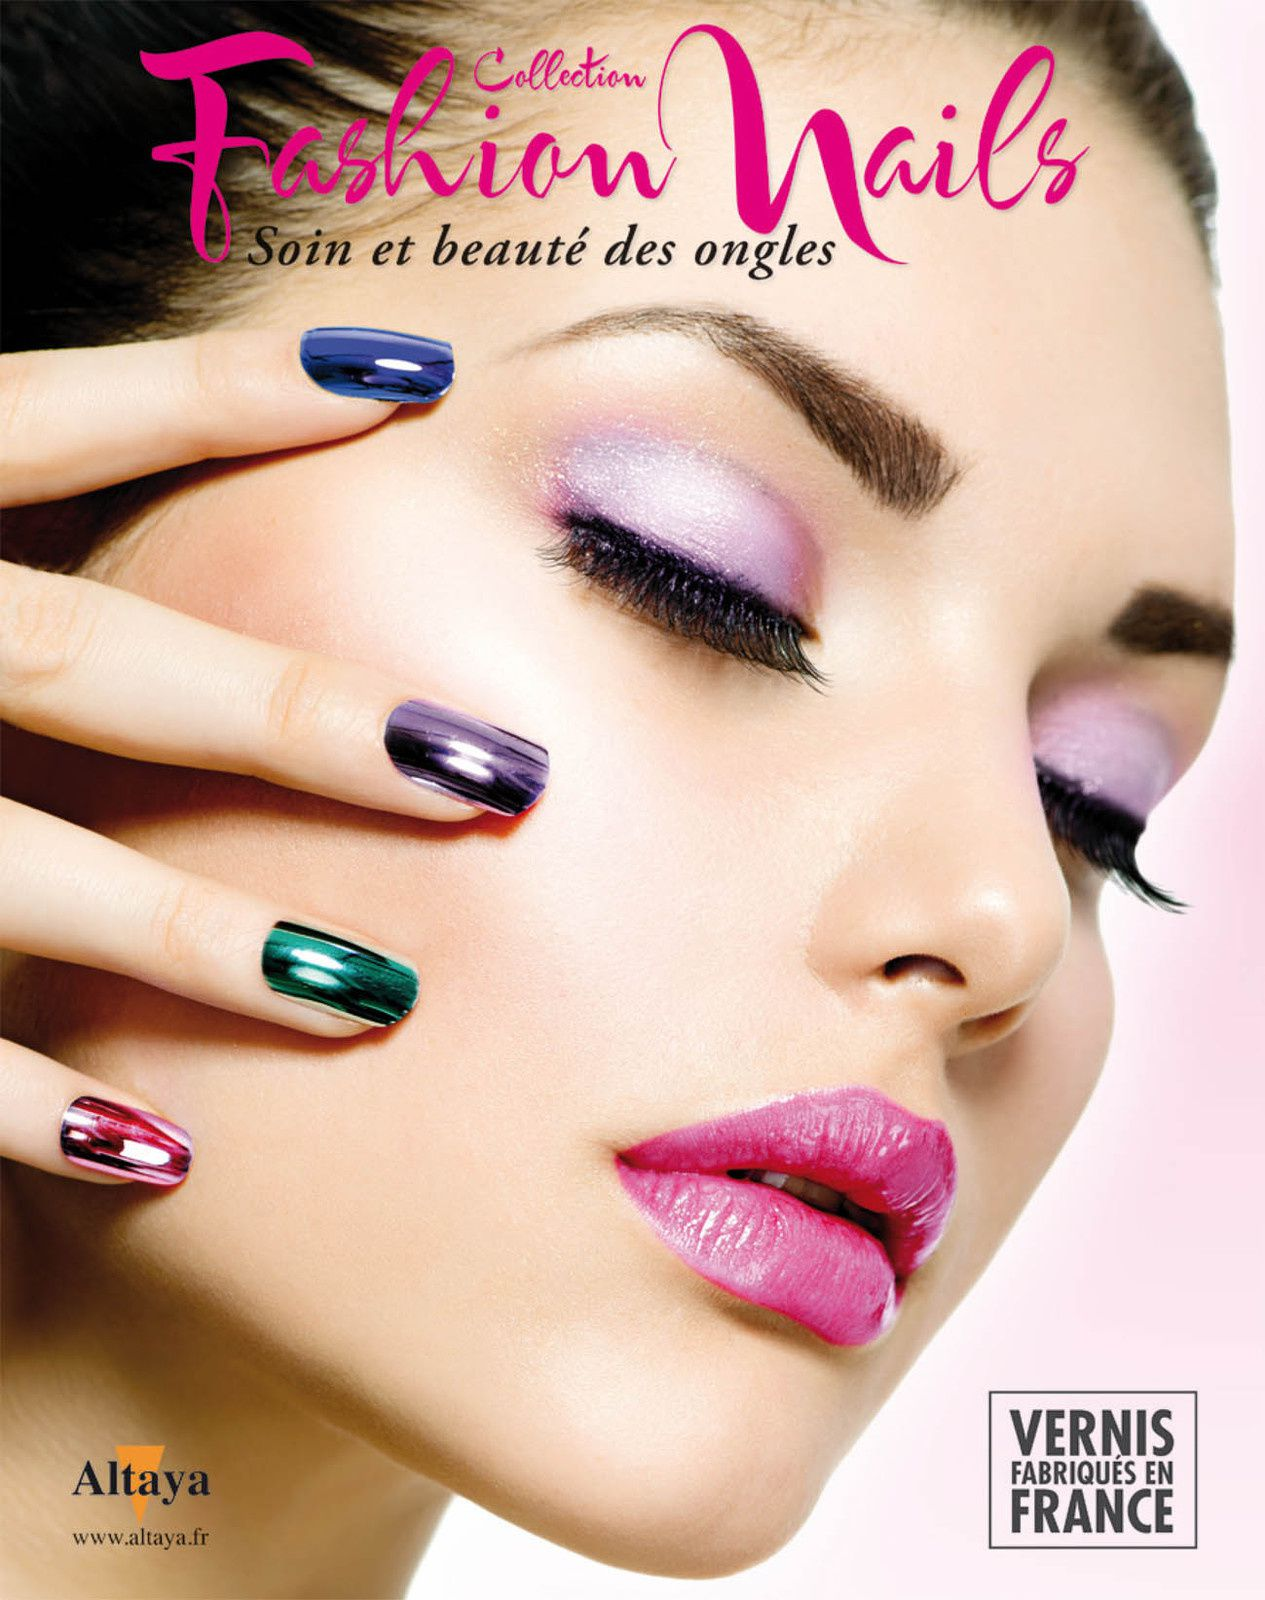 Fashion Nail Trend: Fashion Nails Collection